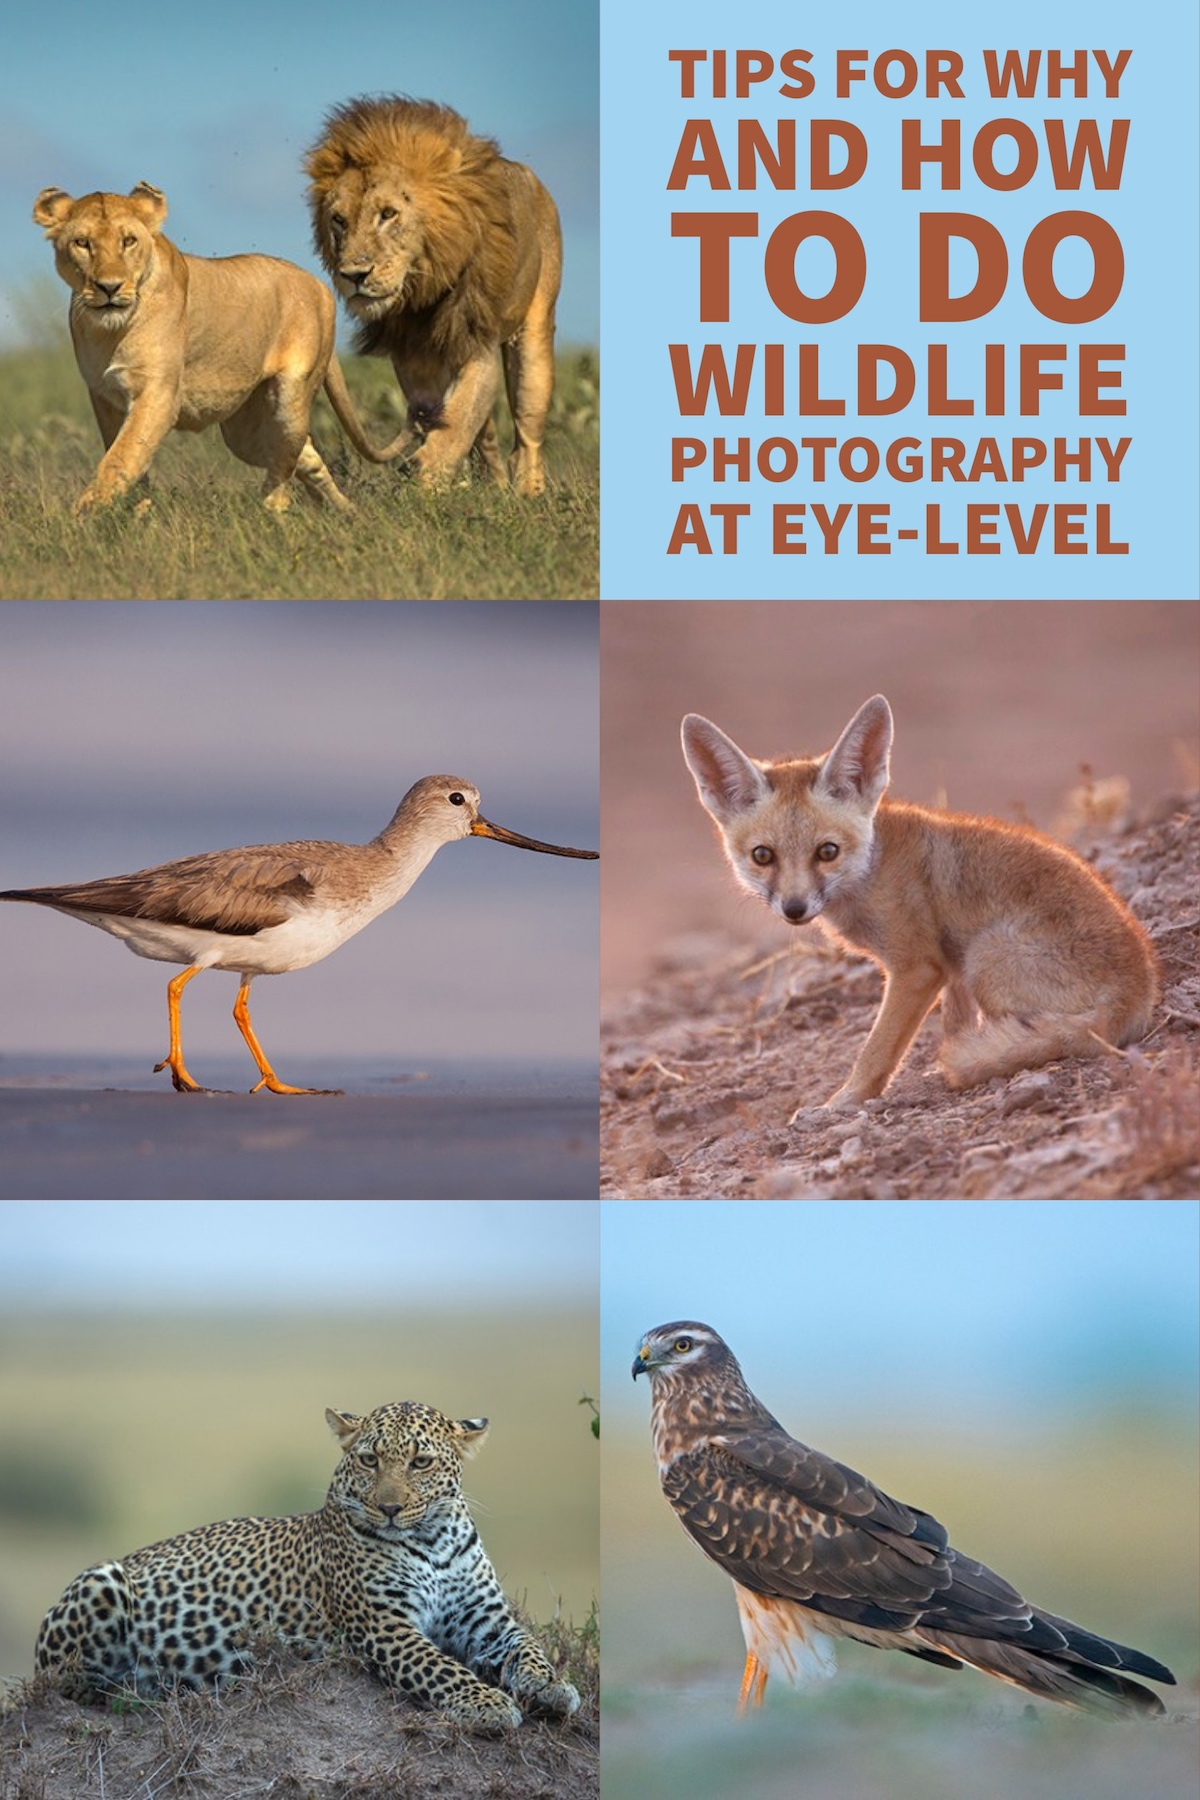 Why and How to do Wildlife Photography at Eye-Level